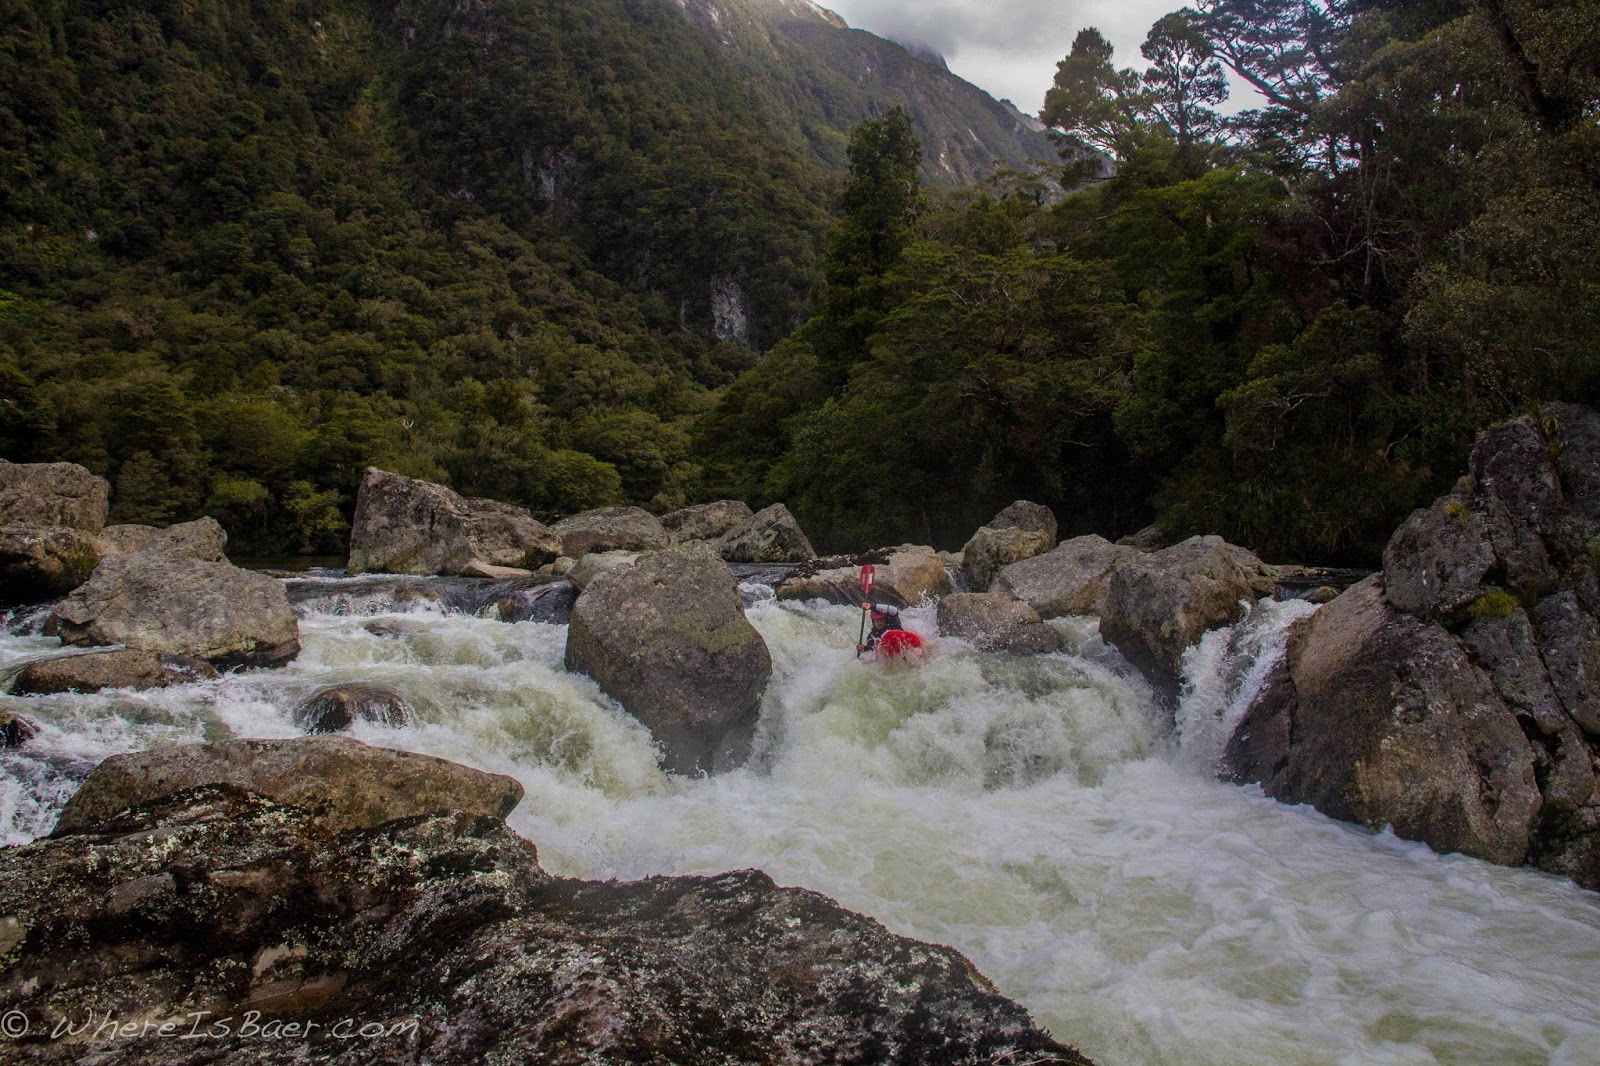 Gonzo reaching for a boof on the second major rapid of the Arthur River, NZ, whereisbaer